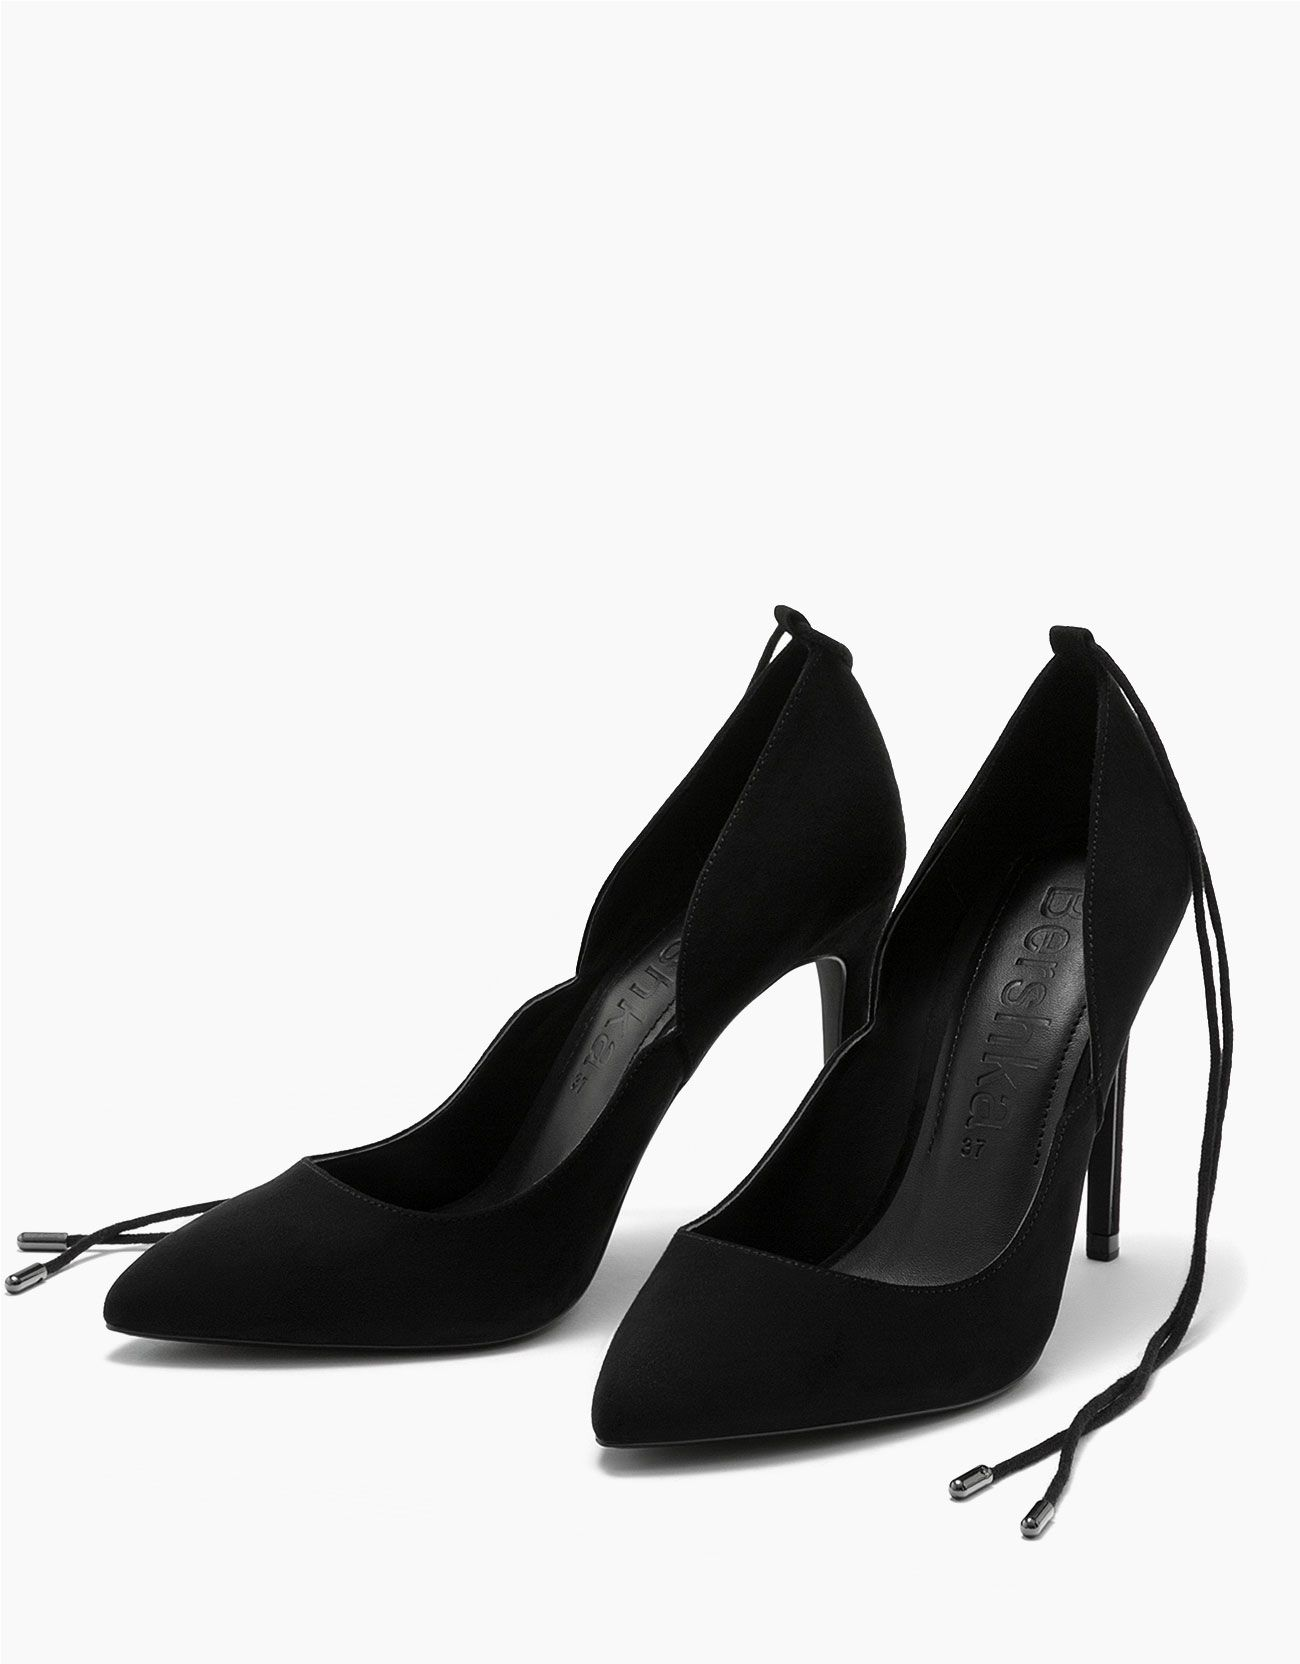 13875e9666e Stiletto heel shoes with ankle strap Discover this and many more items in  Bershka with new